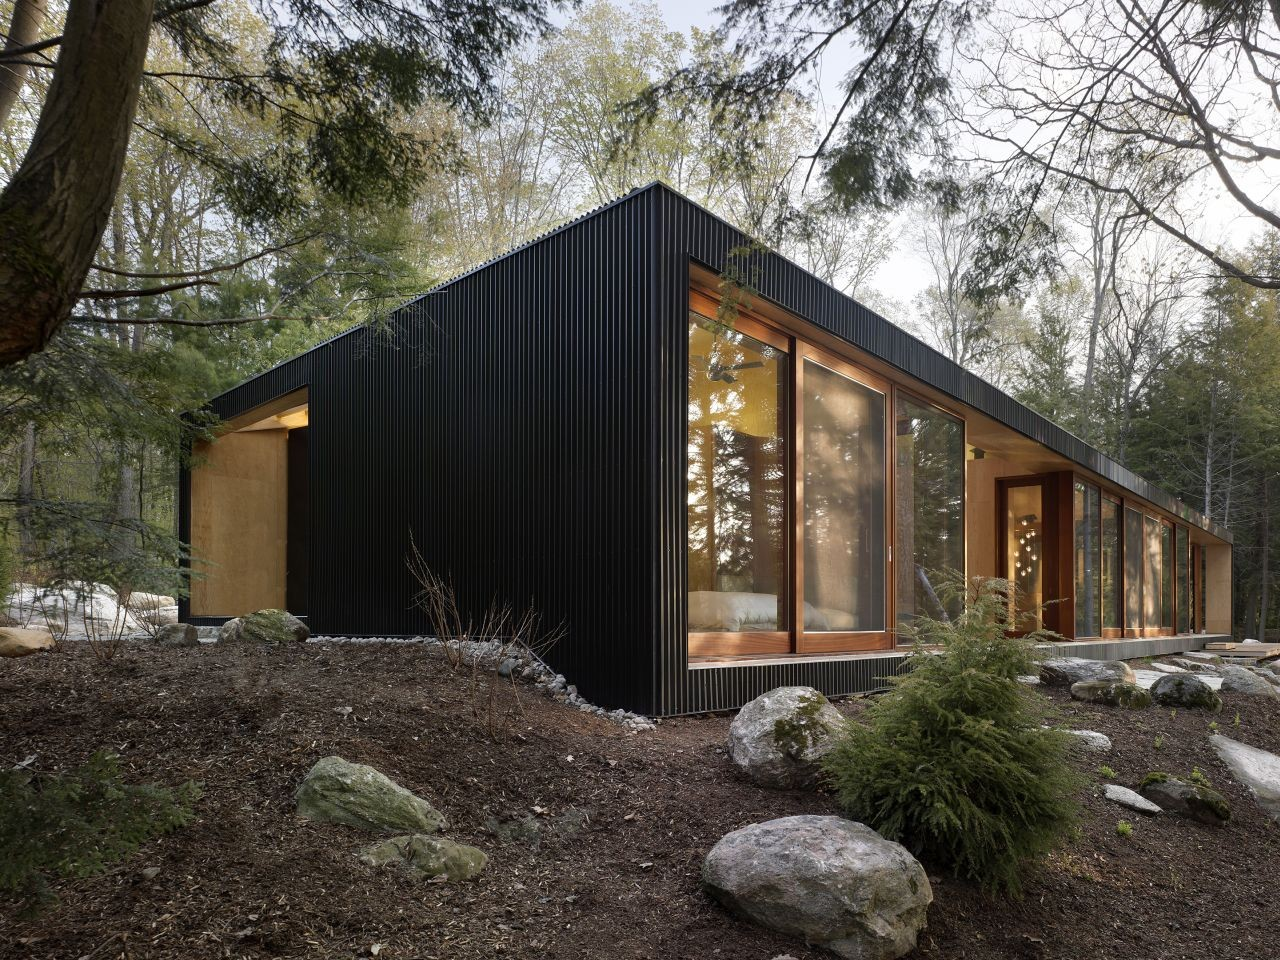 Clear Lake Cottage / MacLennan Jaunkalns Miller Architects, © Ben Rahn/A-Frame